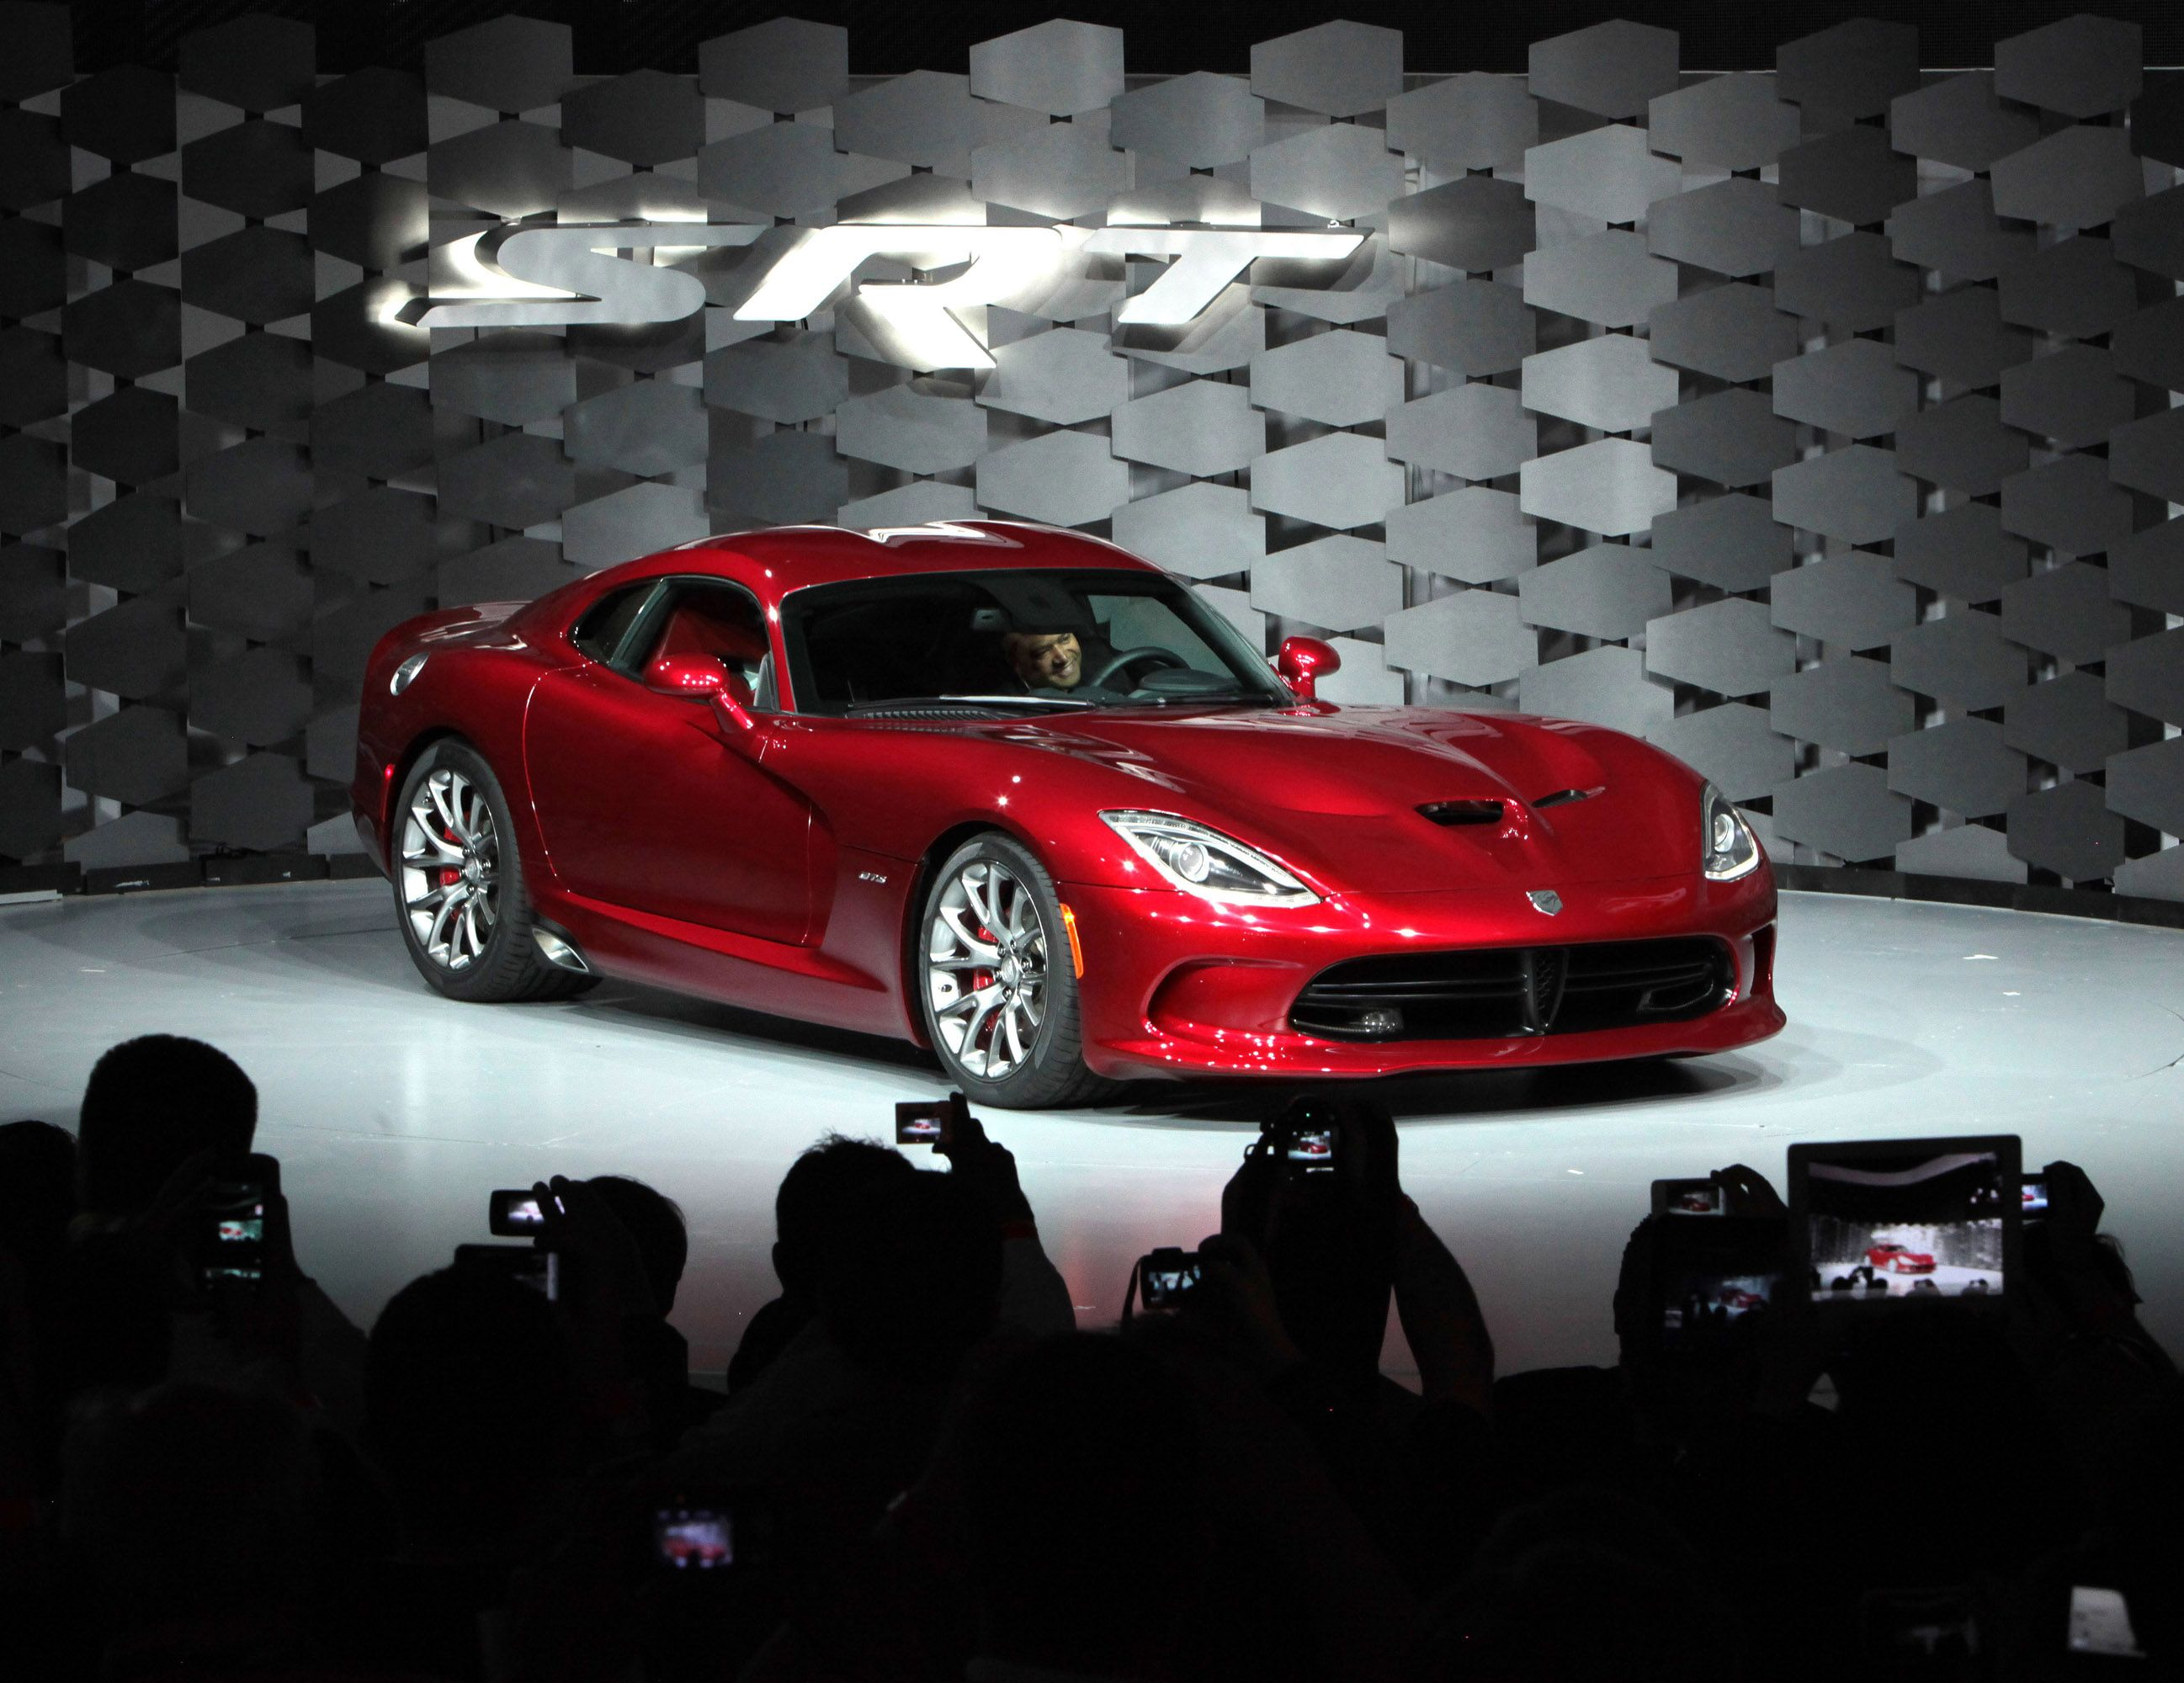 Merveilleux 2013 SRT Viper GTS: The Sizzling Sports Car Roars With An Engine, Which Is  Expected To Get Around 640 Horsepower And 600 Pound Feet Of Torque.